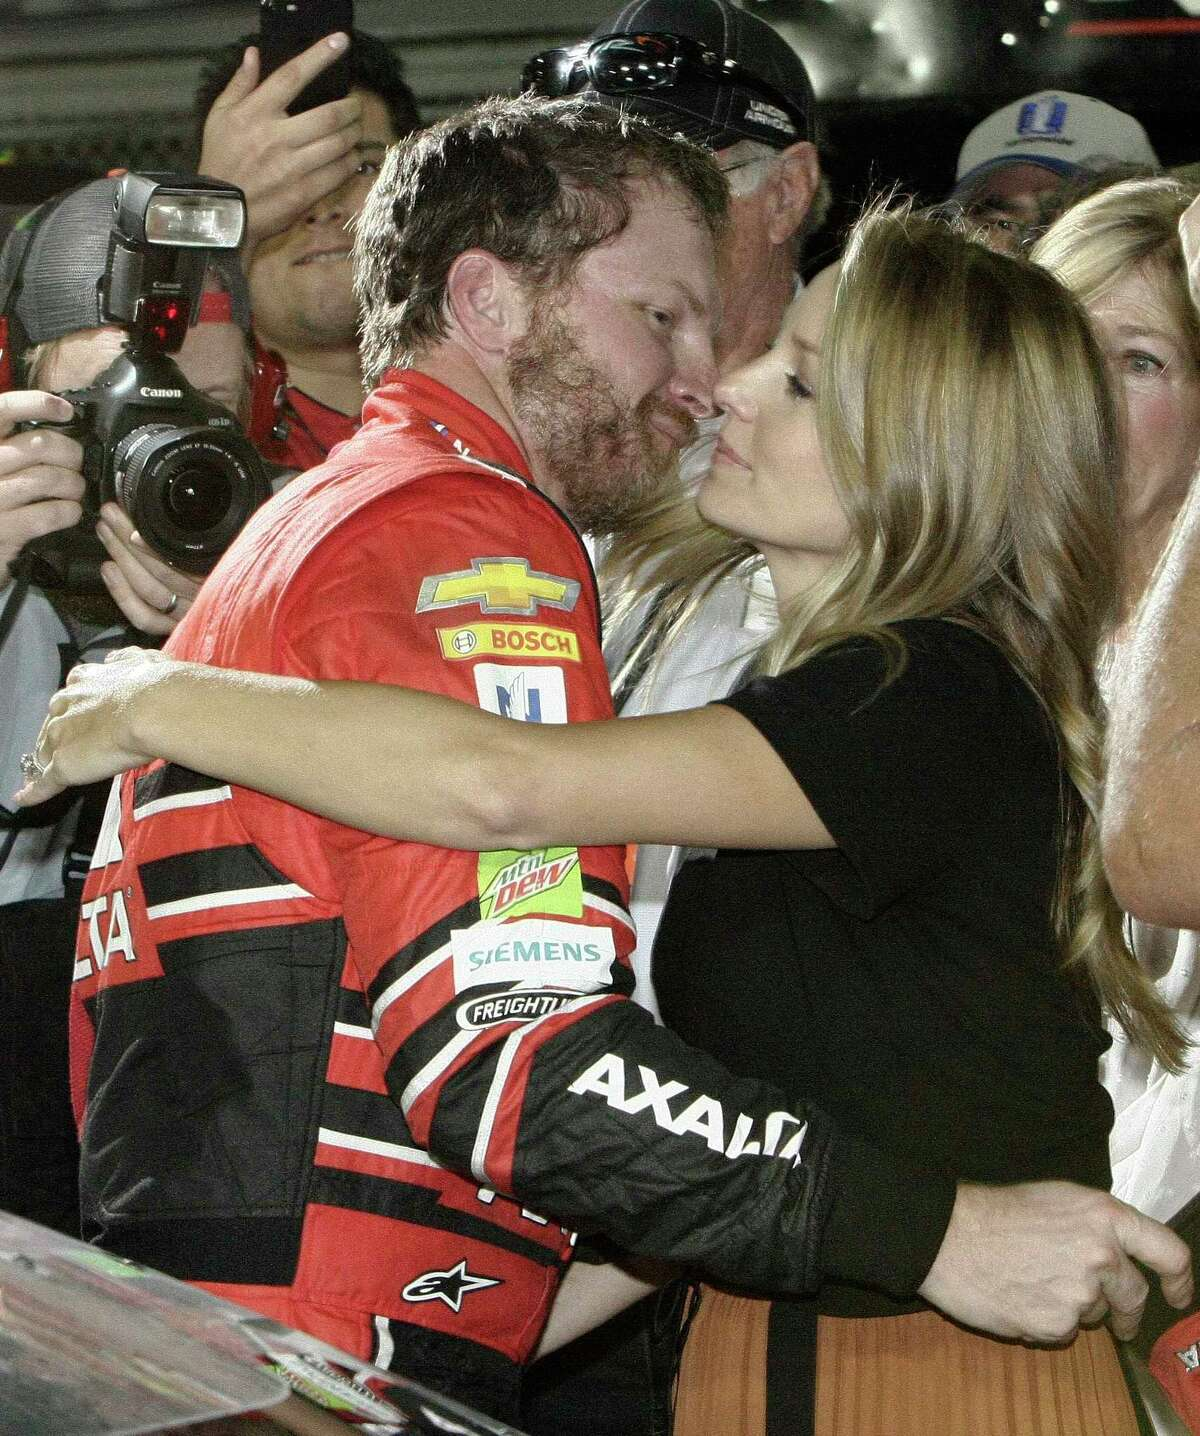 Dale Earnhardt Jr., left, hugs his wife Amy after getting out of his car at the end of a NASCAR Cup Series auto race at Homestead-Miami Speedway in Homestead, Fla., Sunday, Nov. 19, 2017. Earnhardt is retiring from full-time racing. (AP Photo/Terry Renna) ORG XMIT: FLTR110